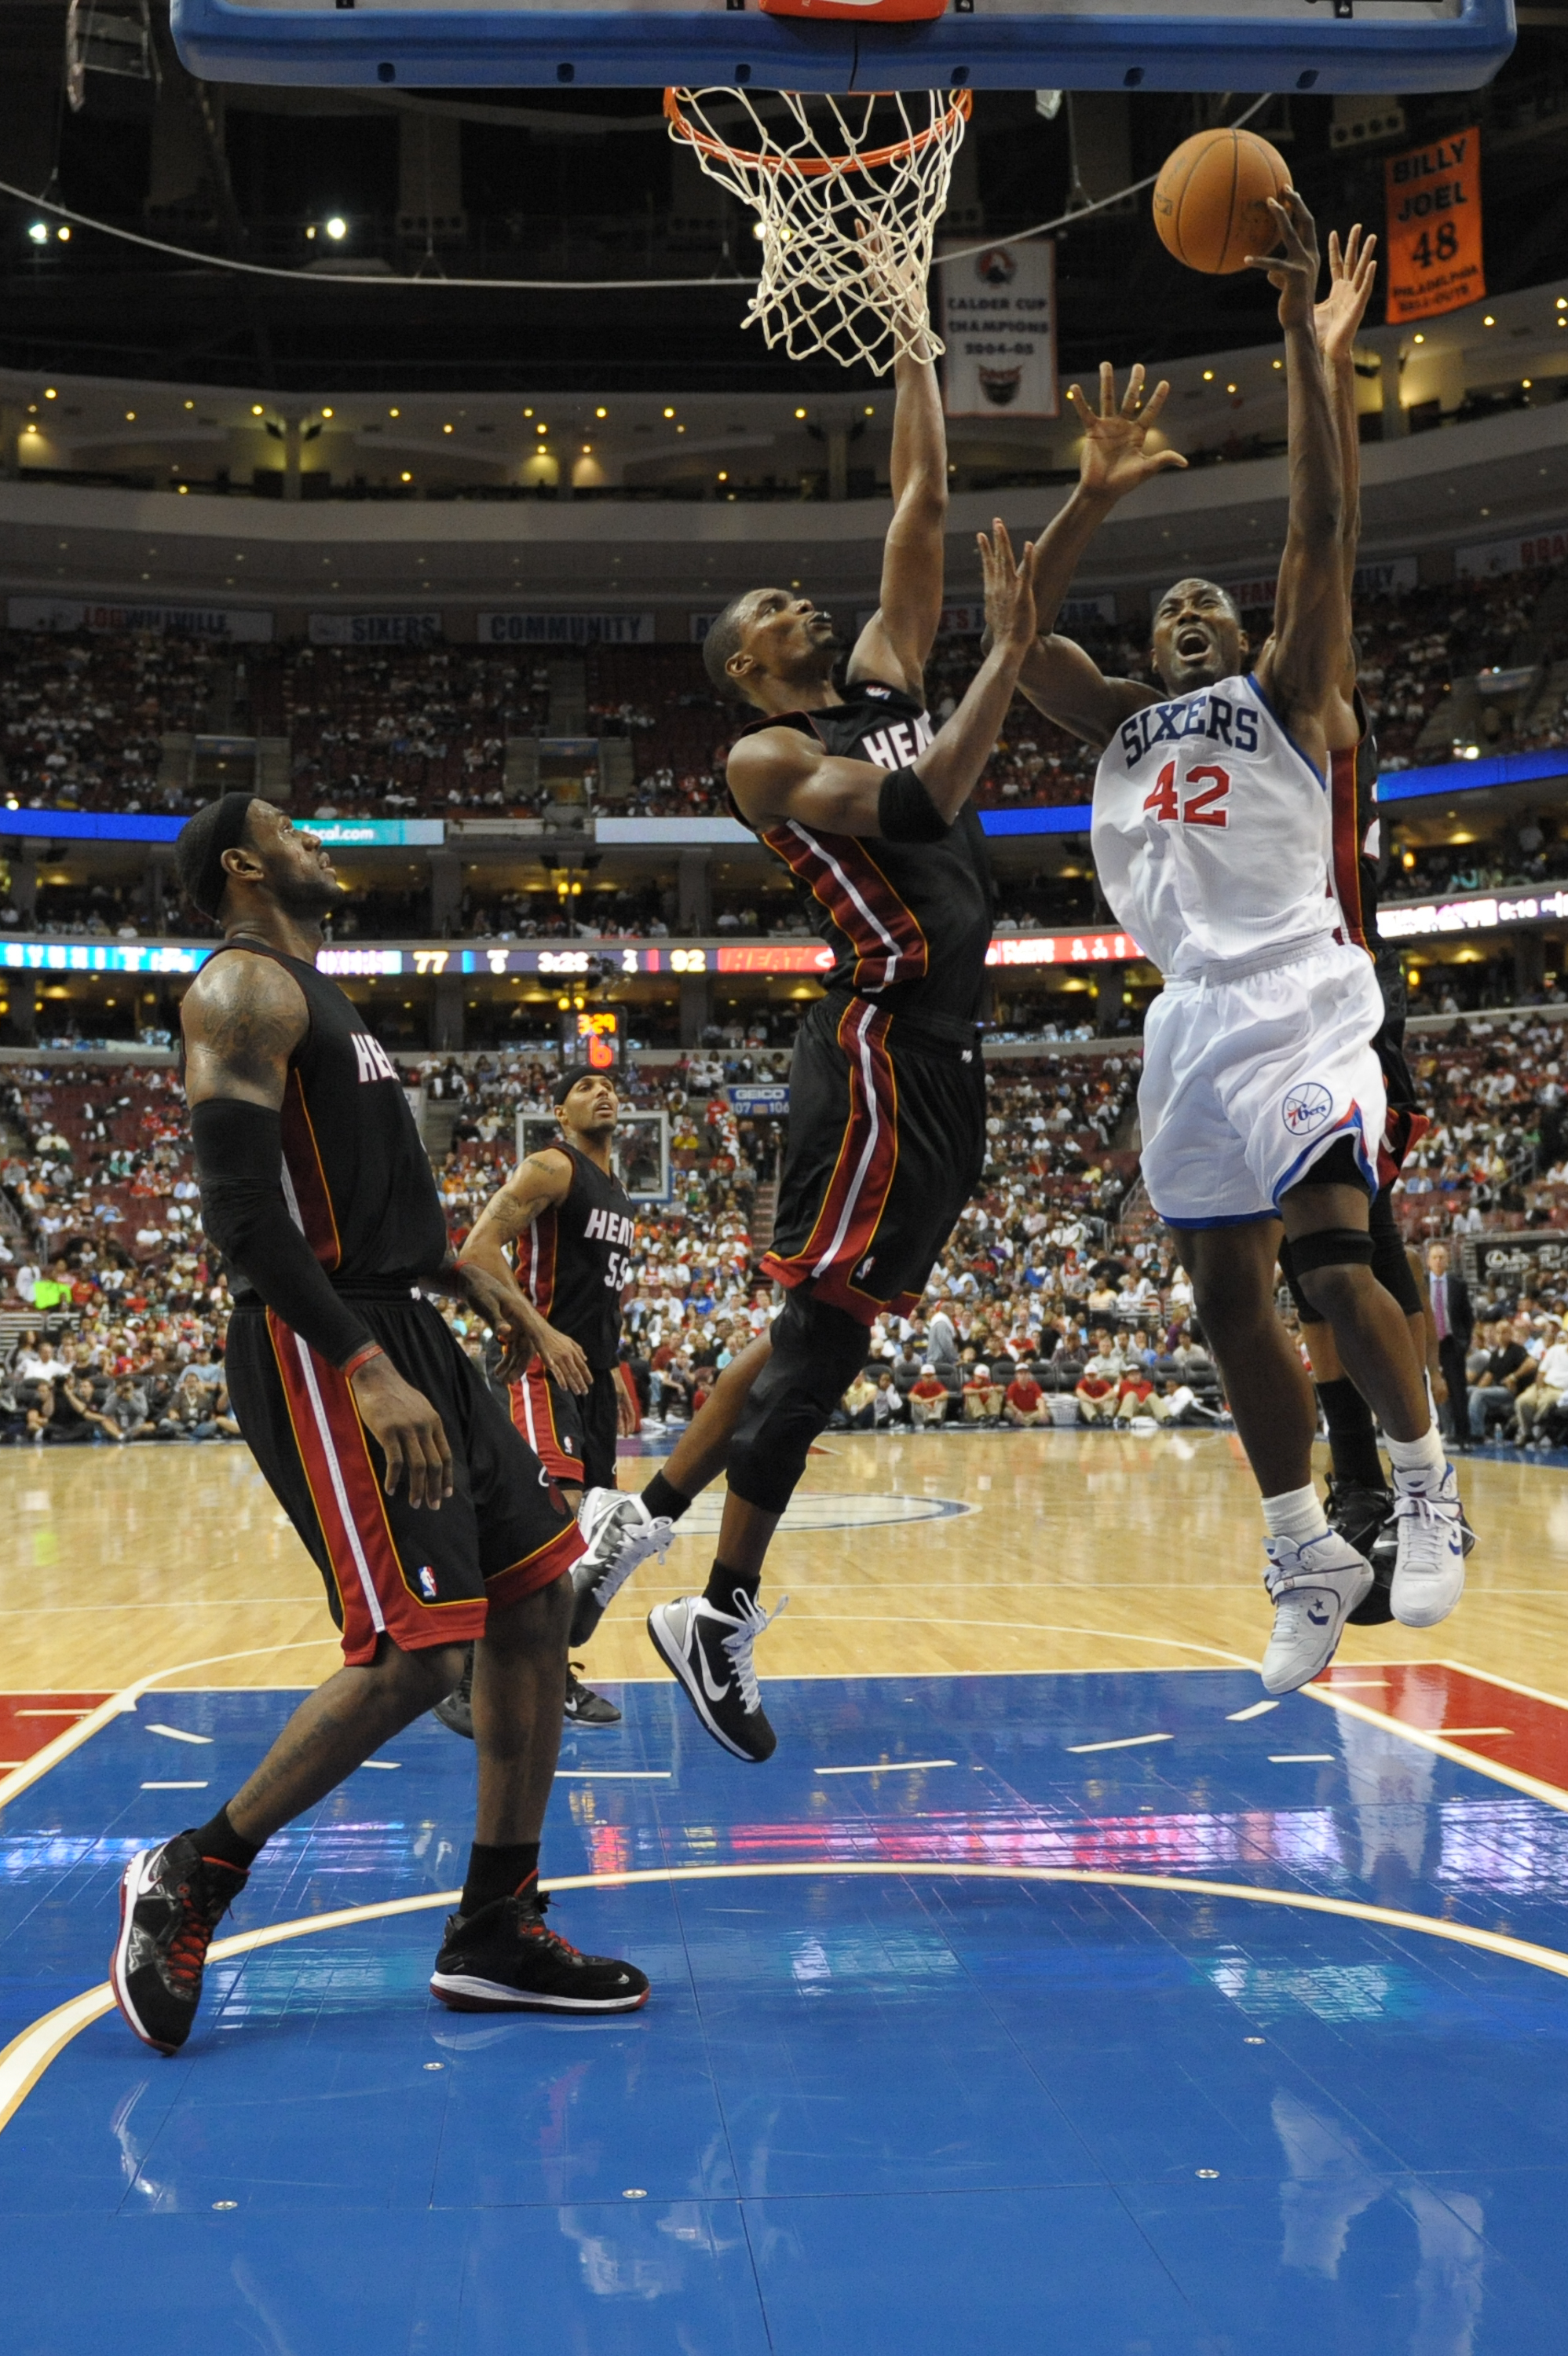 PHILADELPHIA - OCTOBER 27: Elton Brand #42 of the Philadelphia 76ers in action during the game against the Miami Heat at the Wells Fargo Center on October 27, 2010 in Philadelphia, Pennsylvania. NOTE TO USER: User expressly acknowledges and agrees that, b